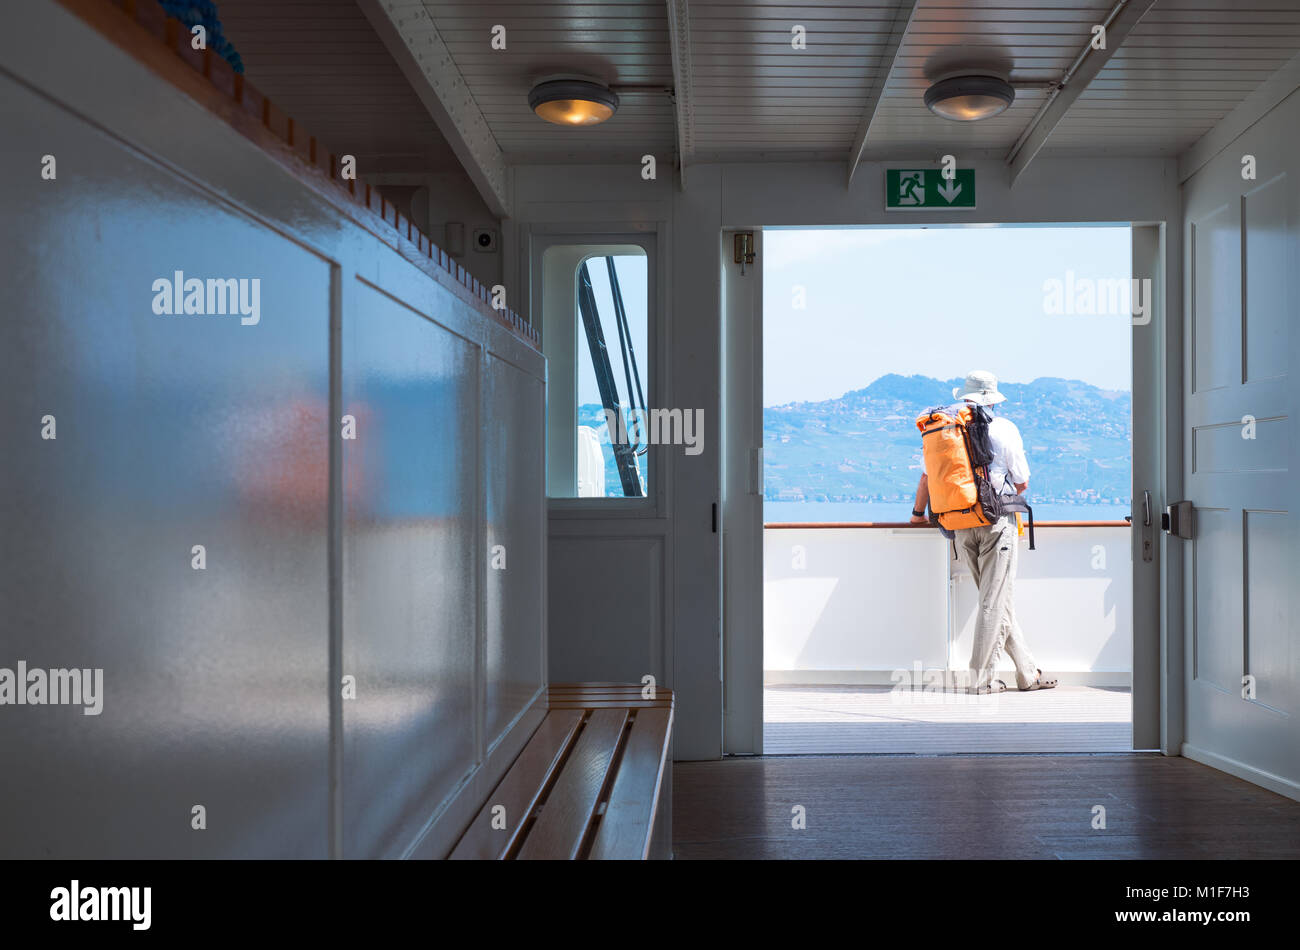 Lausanne, Switzerland, A tourist on a boat crossing the Leman lake - Stock Image